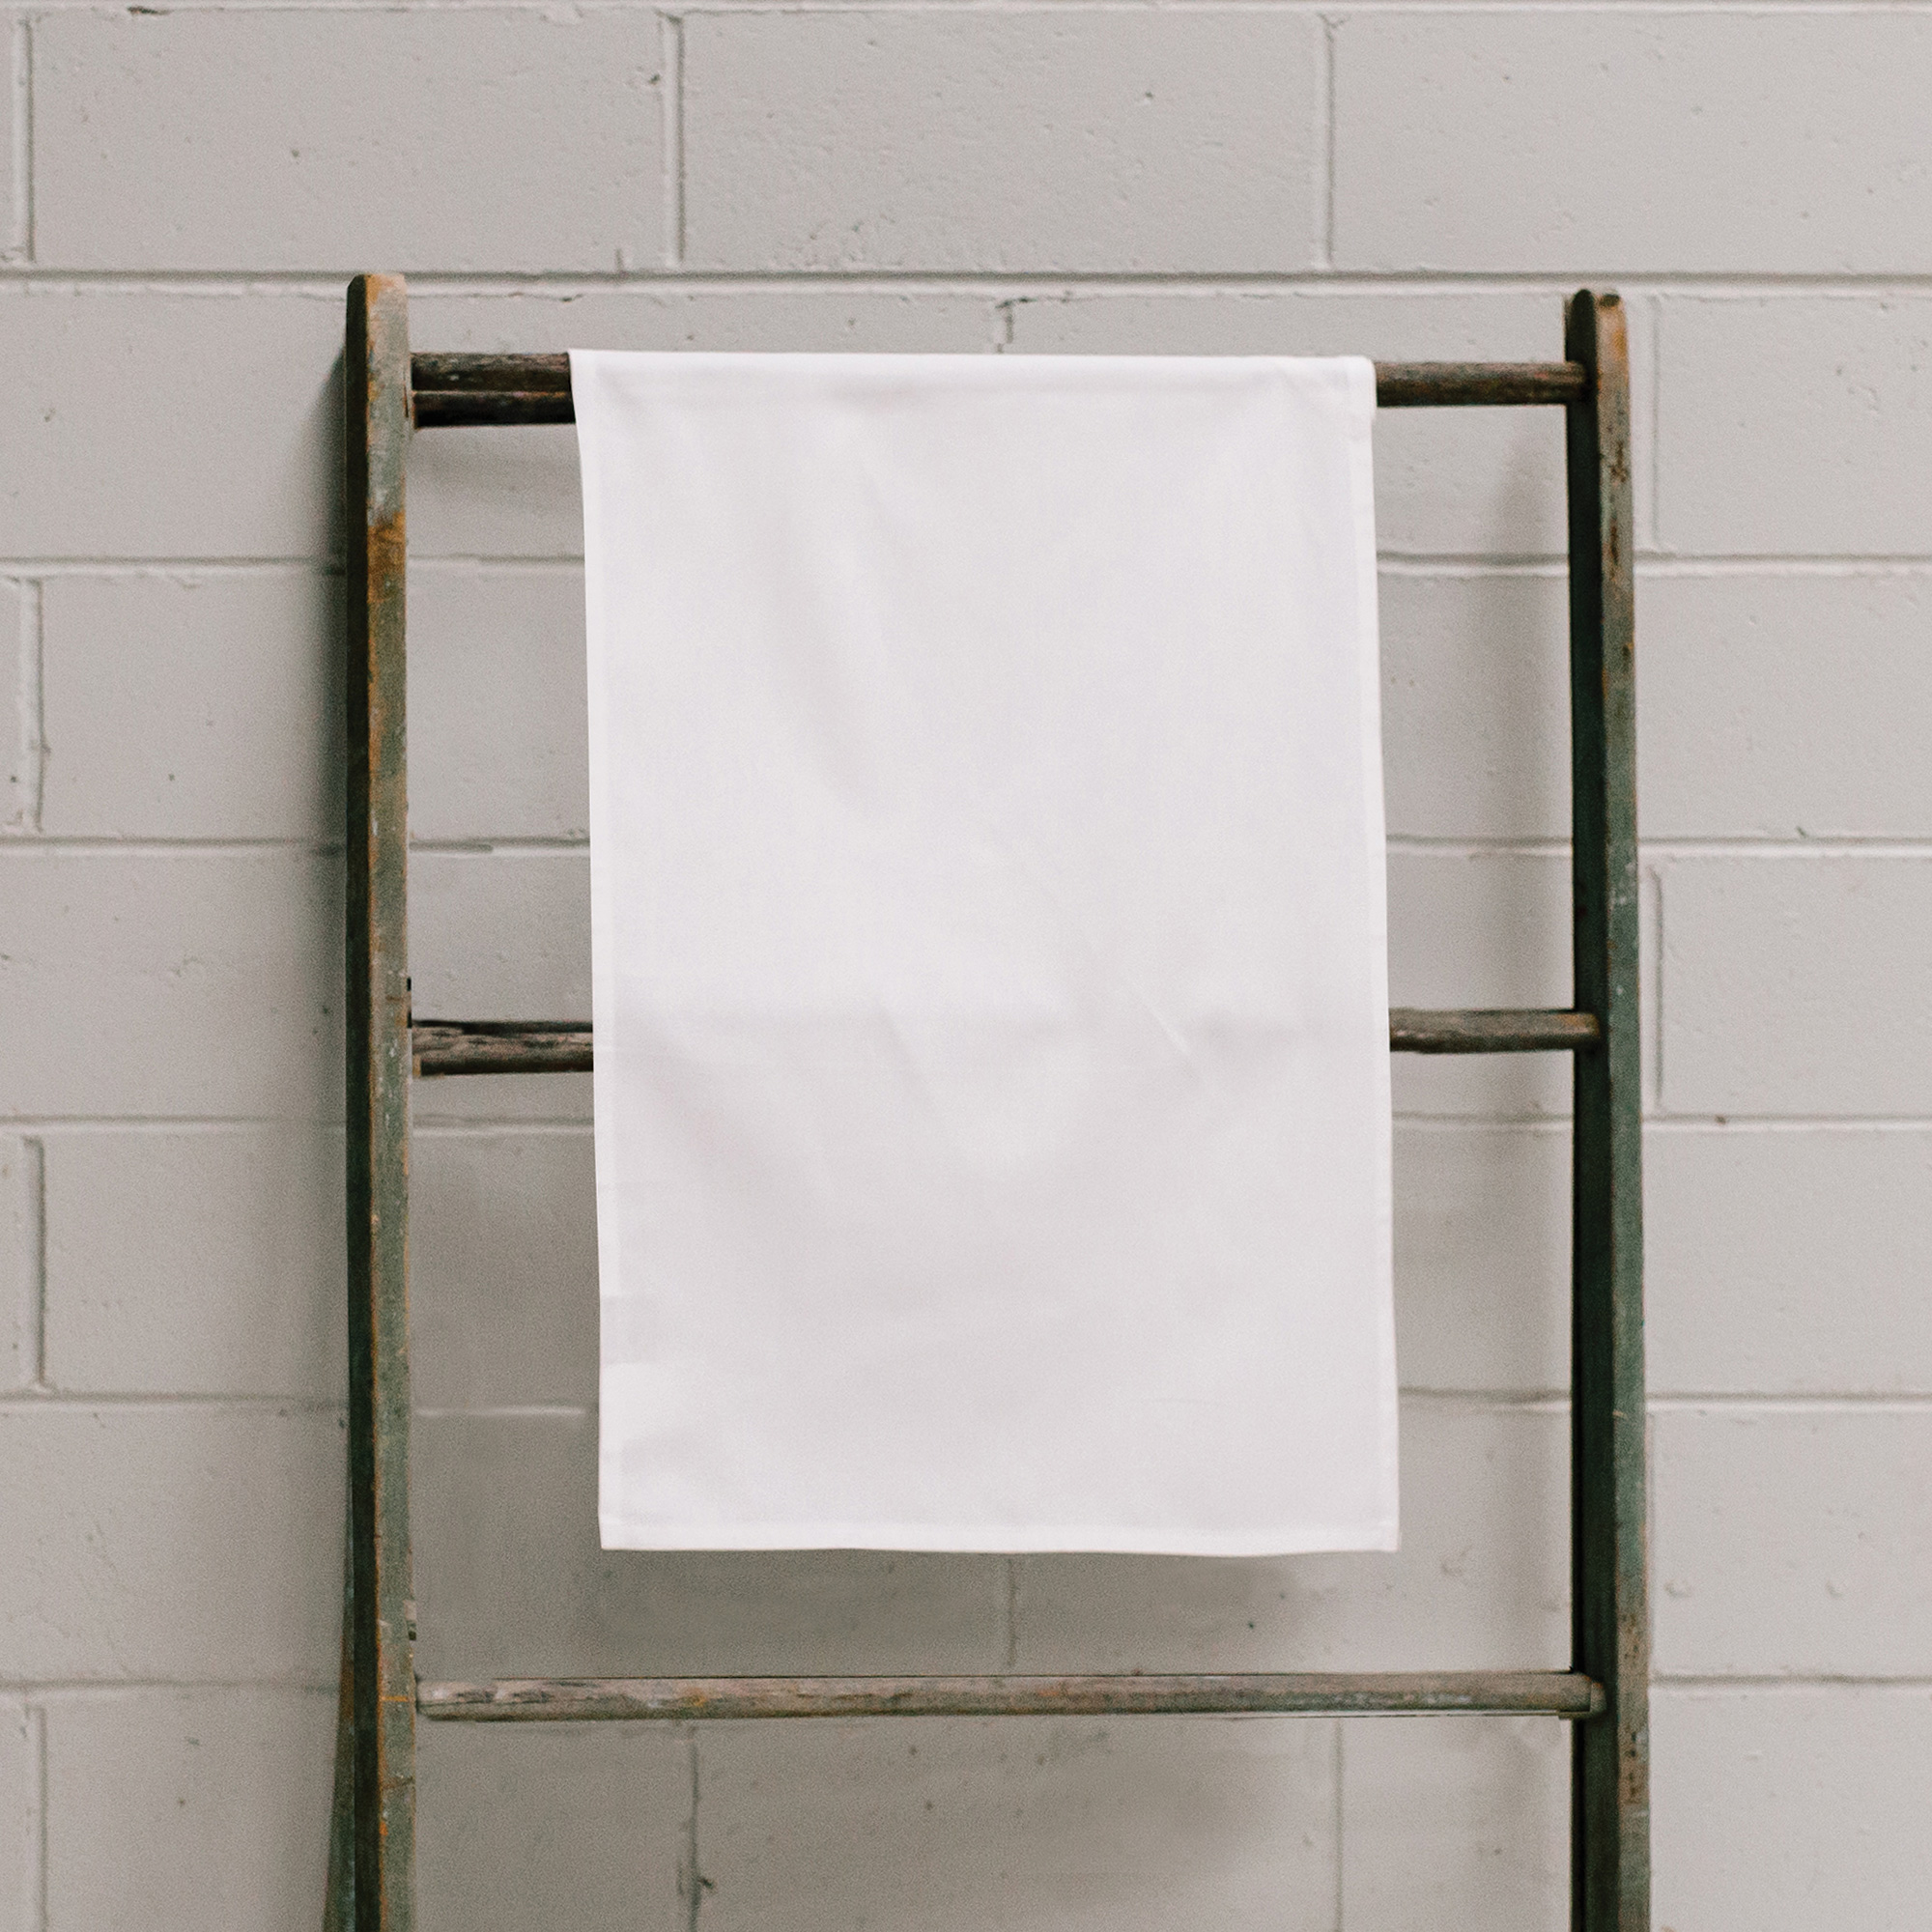 Blank Towel: Blank Tea Towel For Your Design